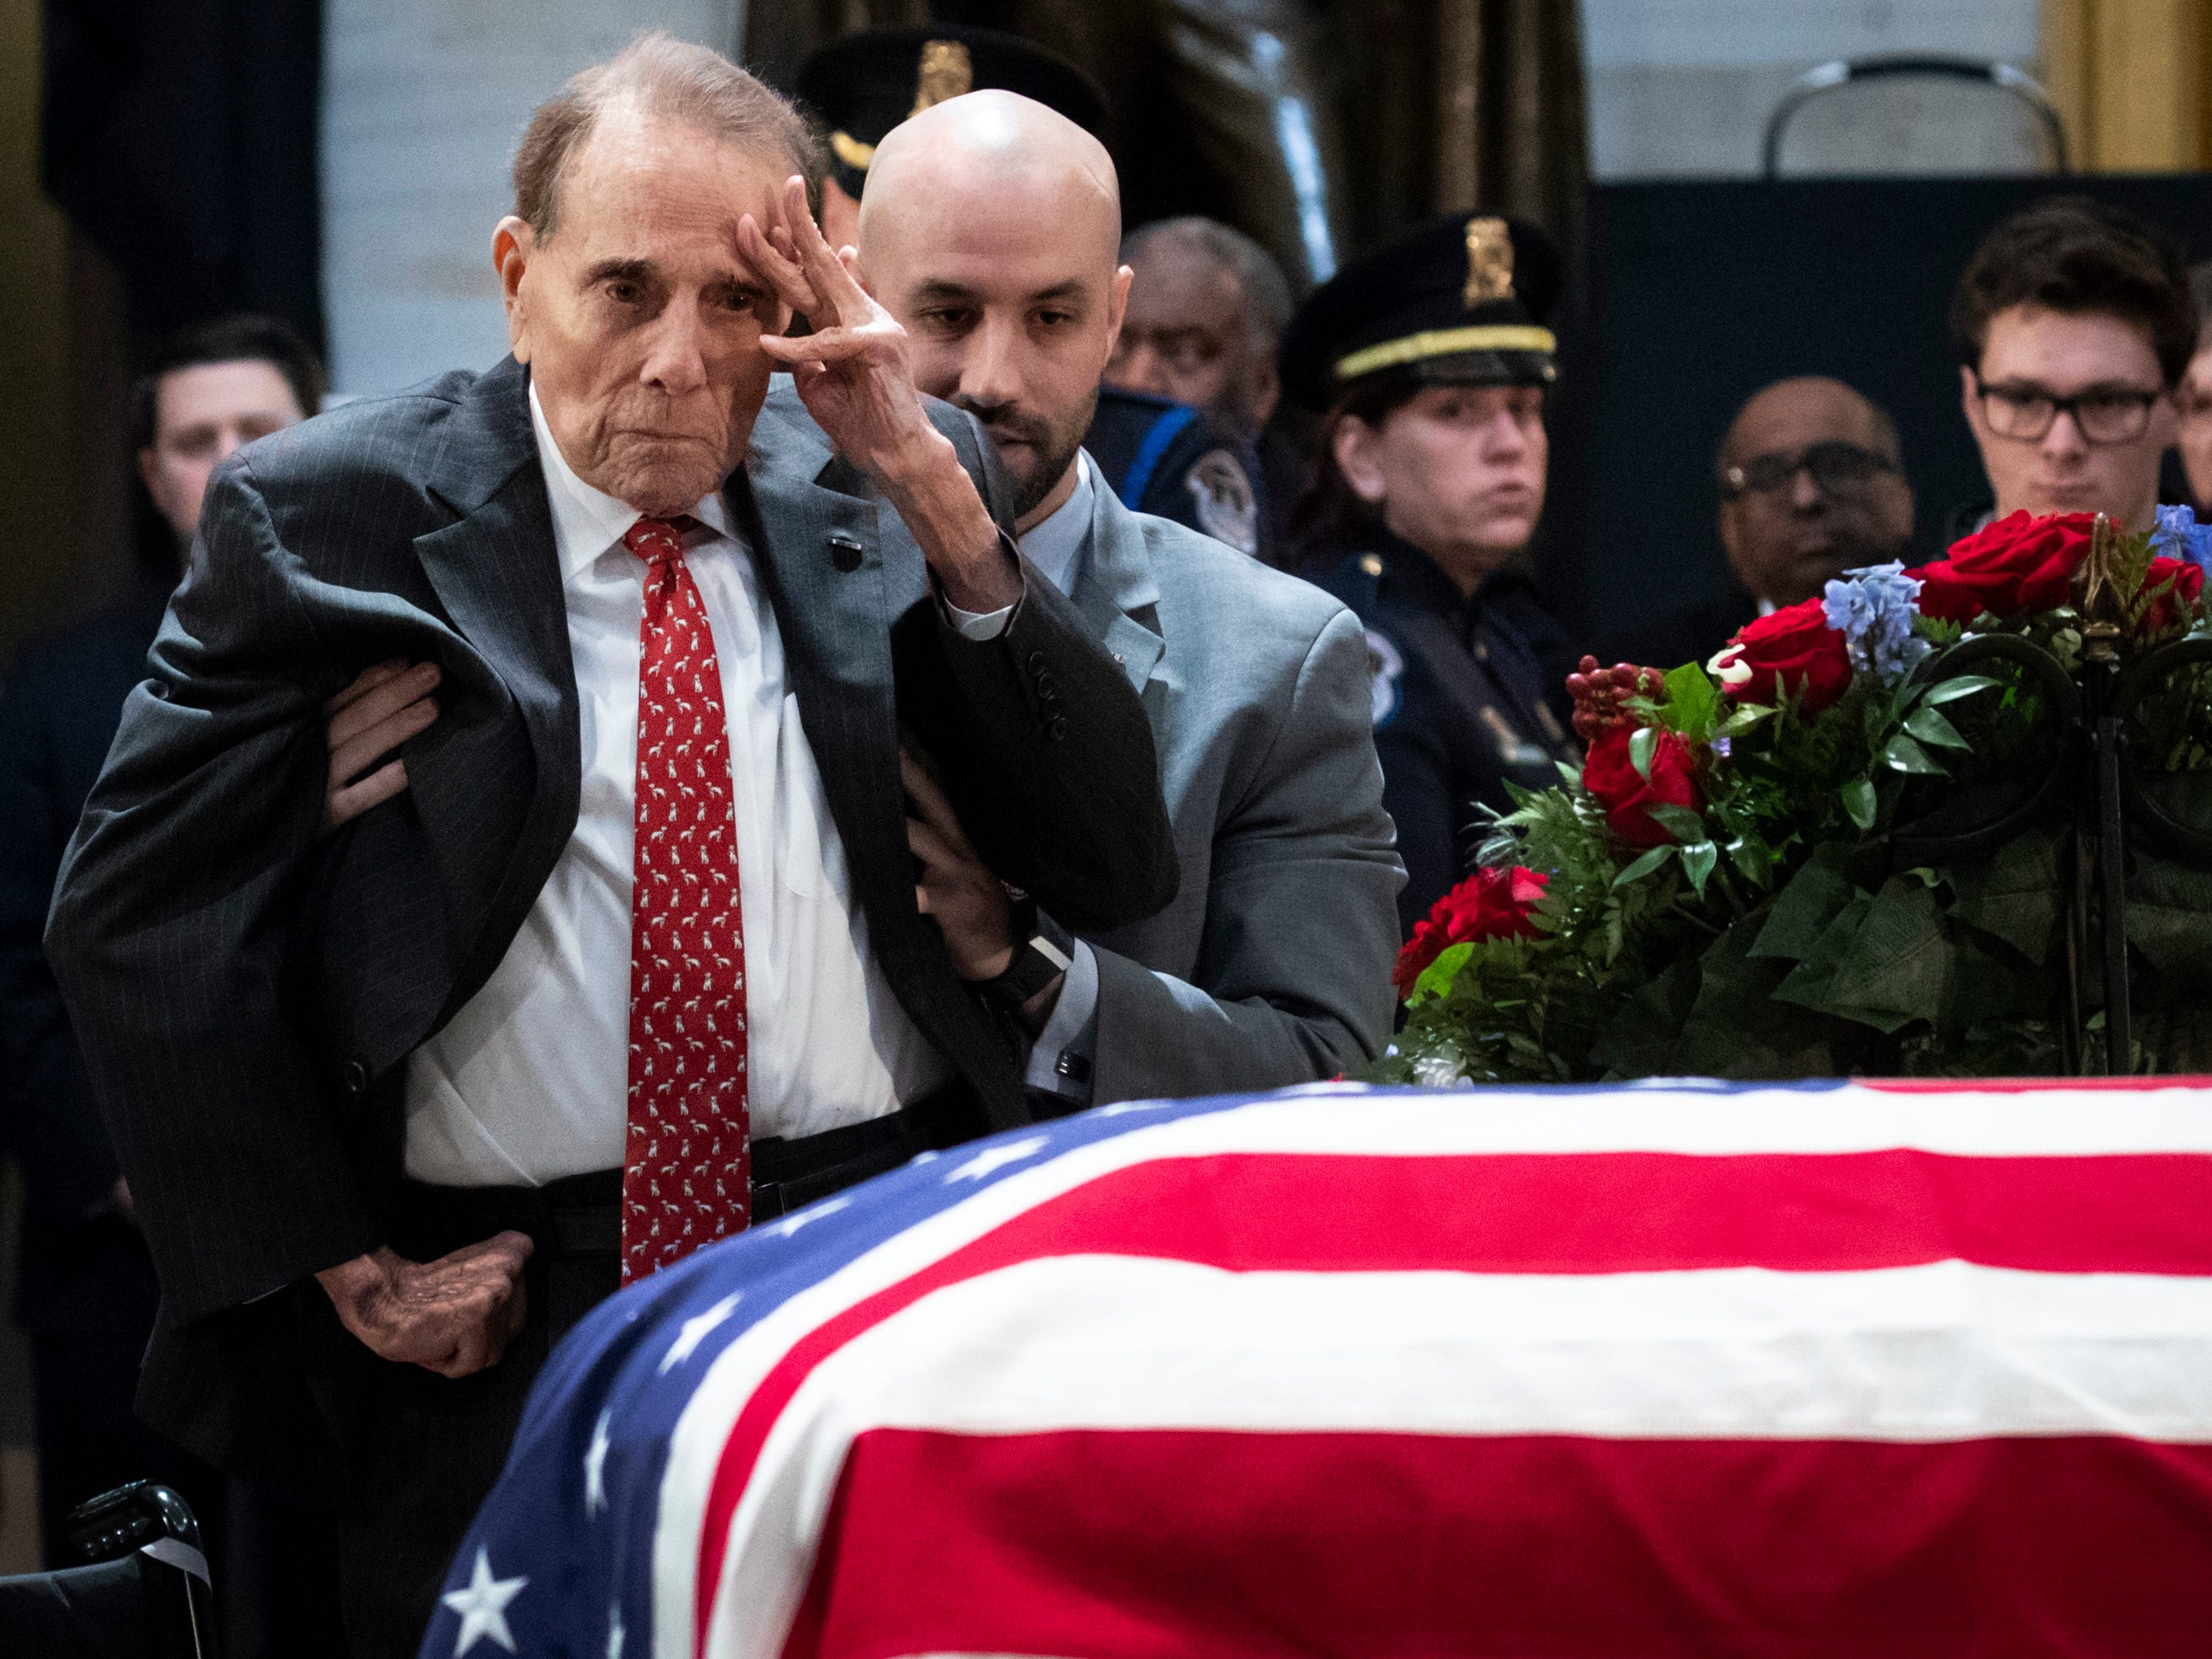 Former Sen. Bob Dole stands up and salutes the casket of the late former President George H.W. Bush as he lies in state at the U.S. Capitol, December 4, 2018 in Washington, D.C. A World War II combat veteran, Bush served as a member of Congress from Texas, ambassador to the United Nations, director of the CIA, vice president and 41st president of the United States.